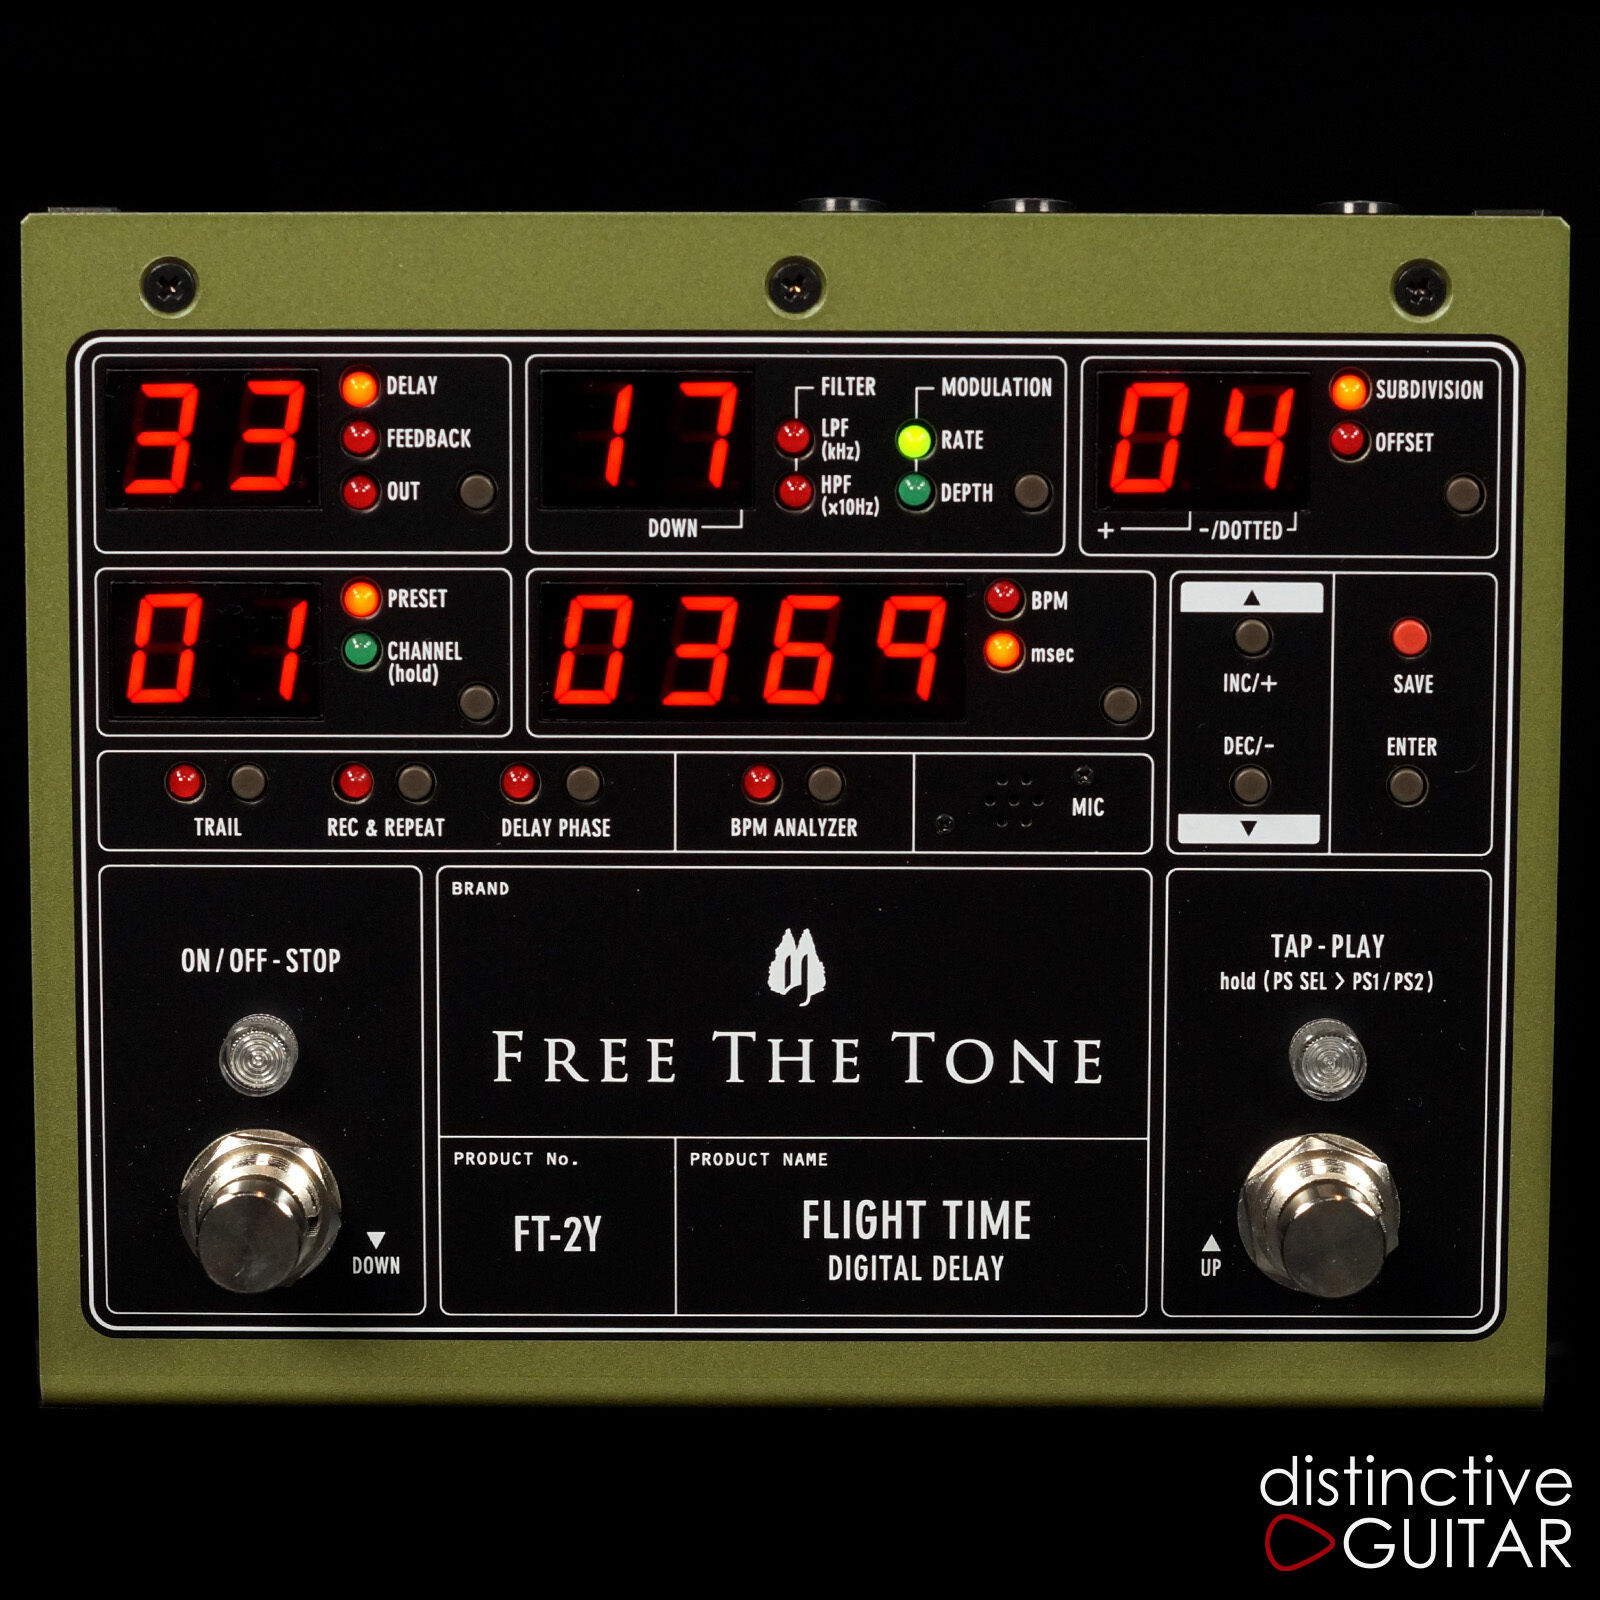 NEW FREE THE TONE FT2Y FLIGHT TIME DIGITAL DELAY BOUTIQUE GUITAR EFFECTS PEDAL